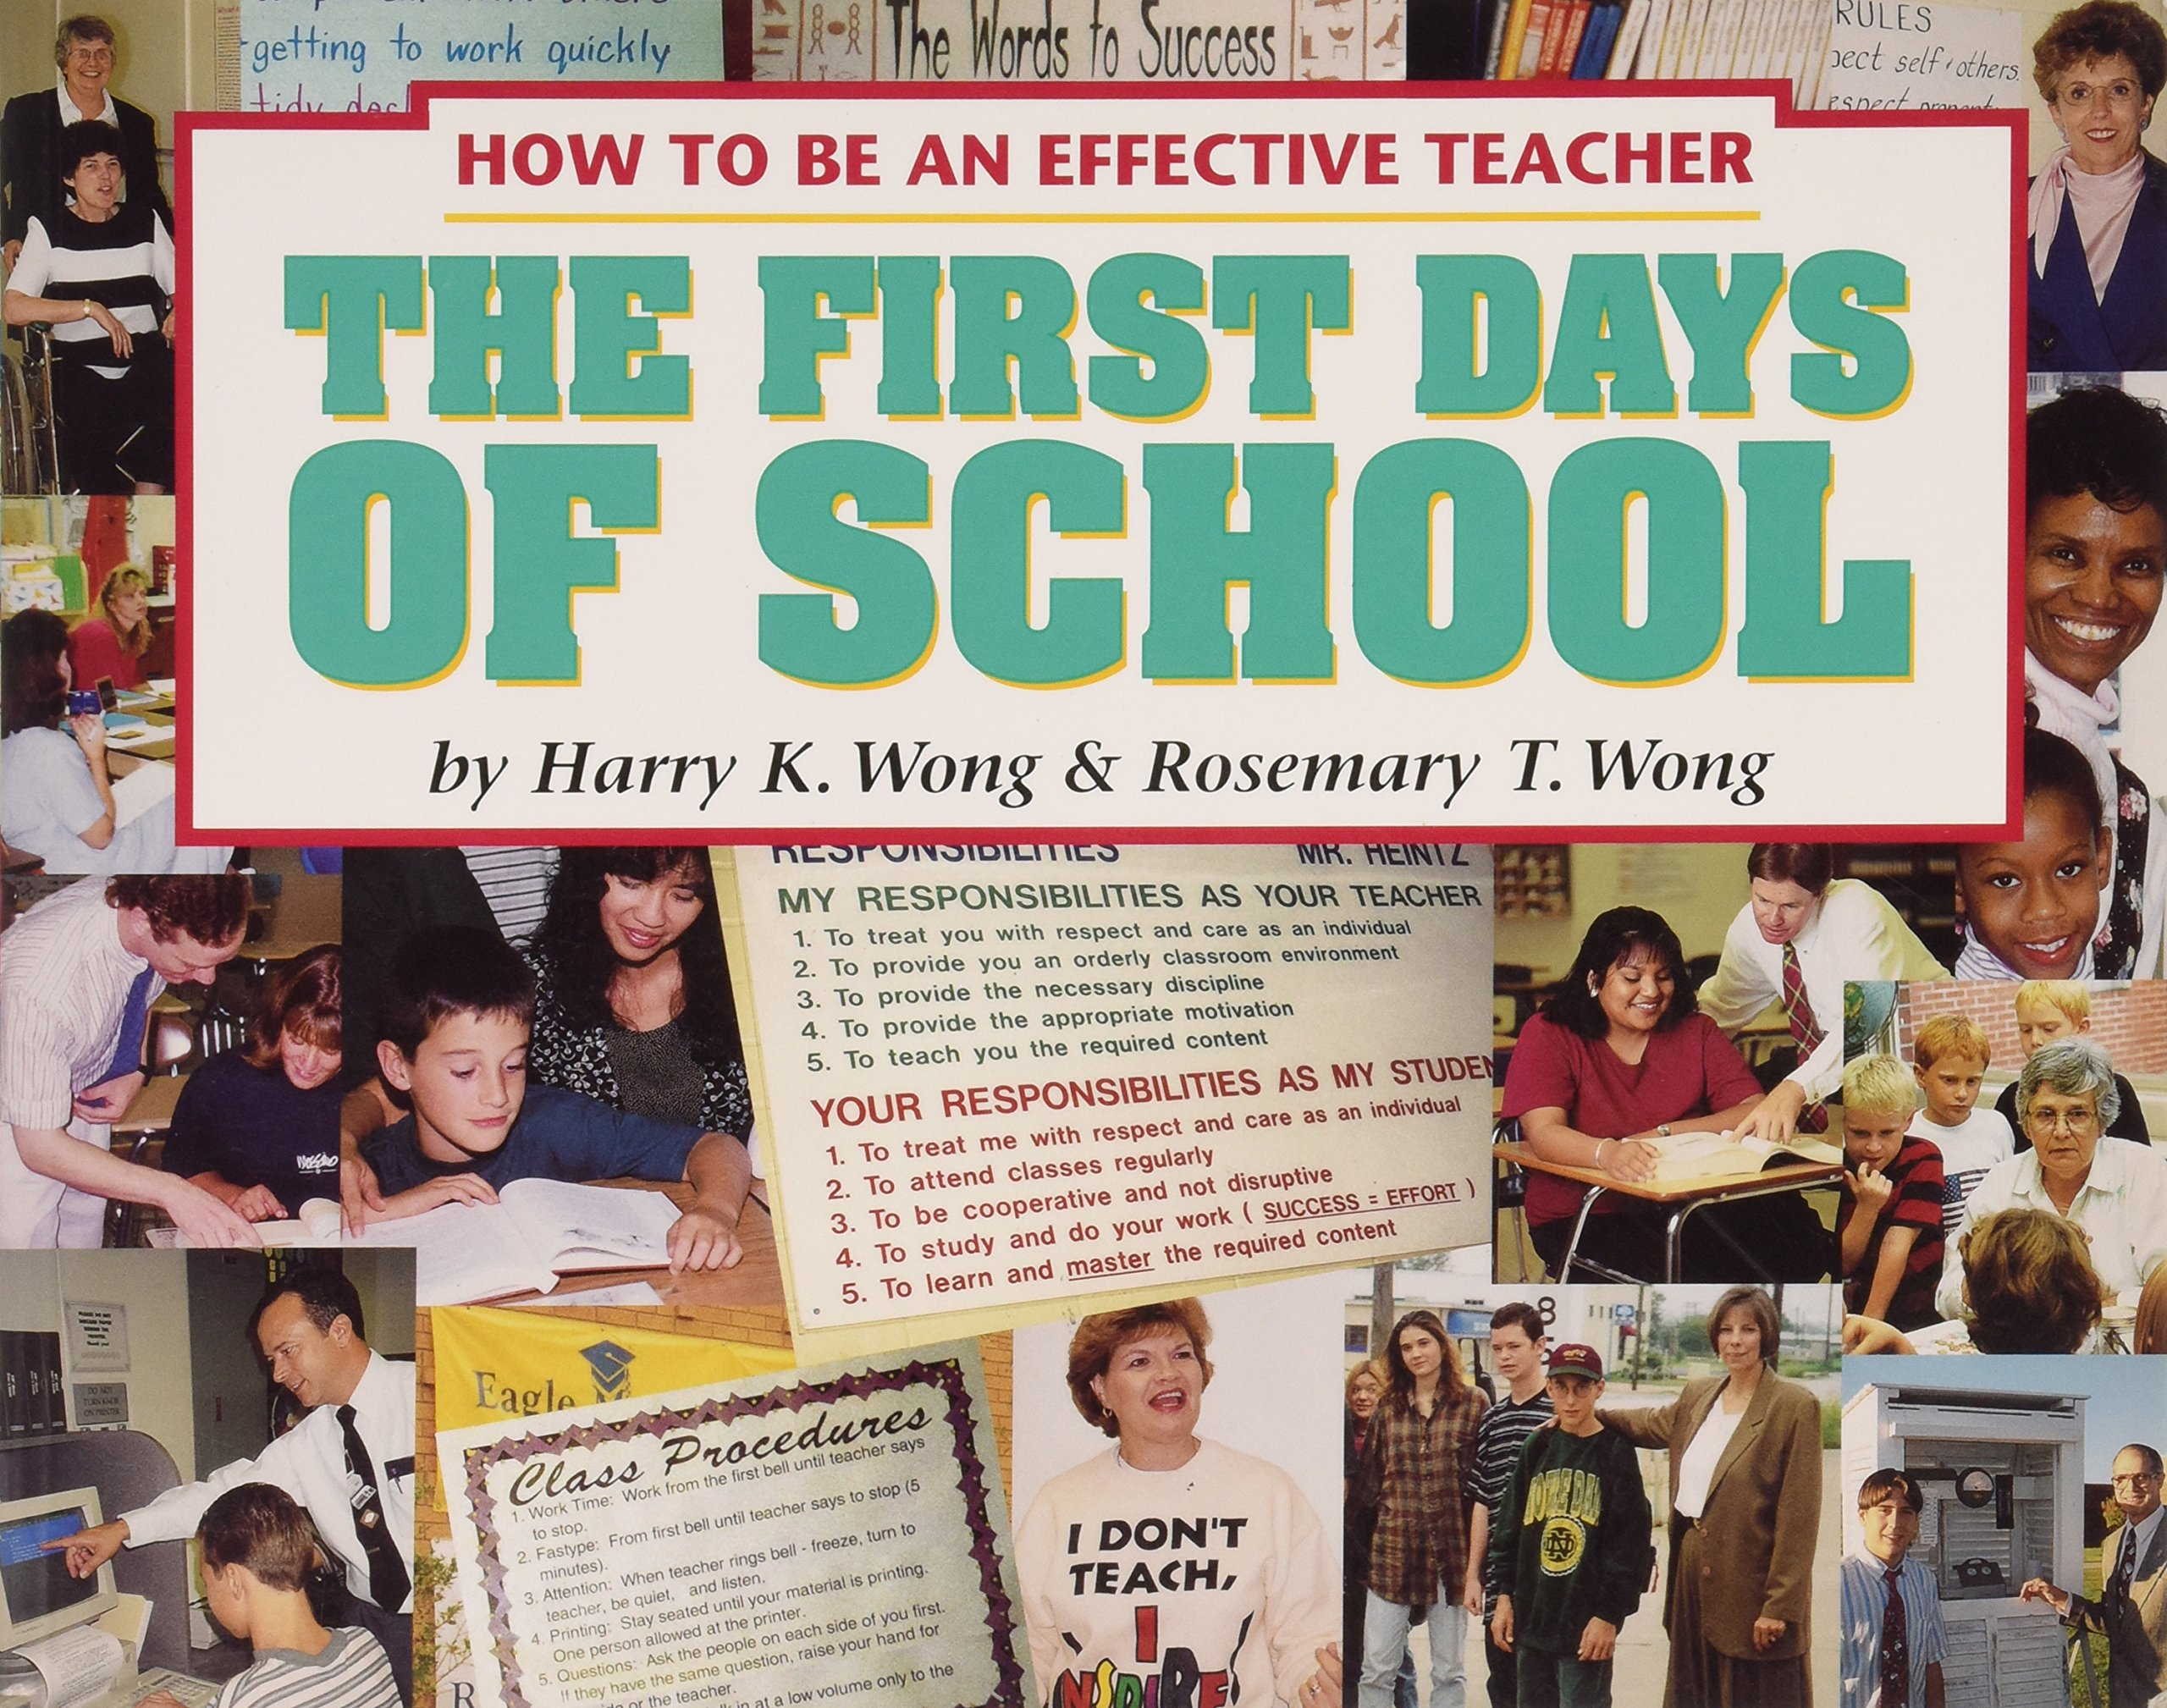 the first days of school: how to be an effective teacher essay Now, the buzz is that the five paragraph essay is out, and my superiors at school (none of whom were around in the old days) have begun to repeat the buzz they, too, have been hearing about how .